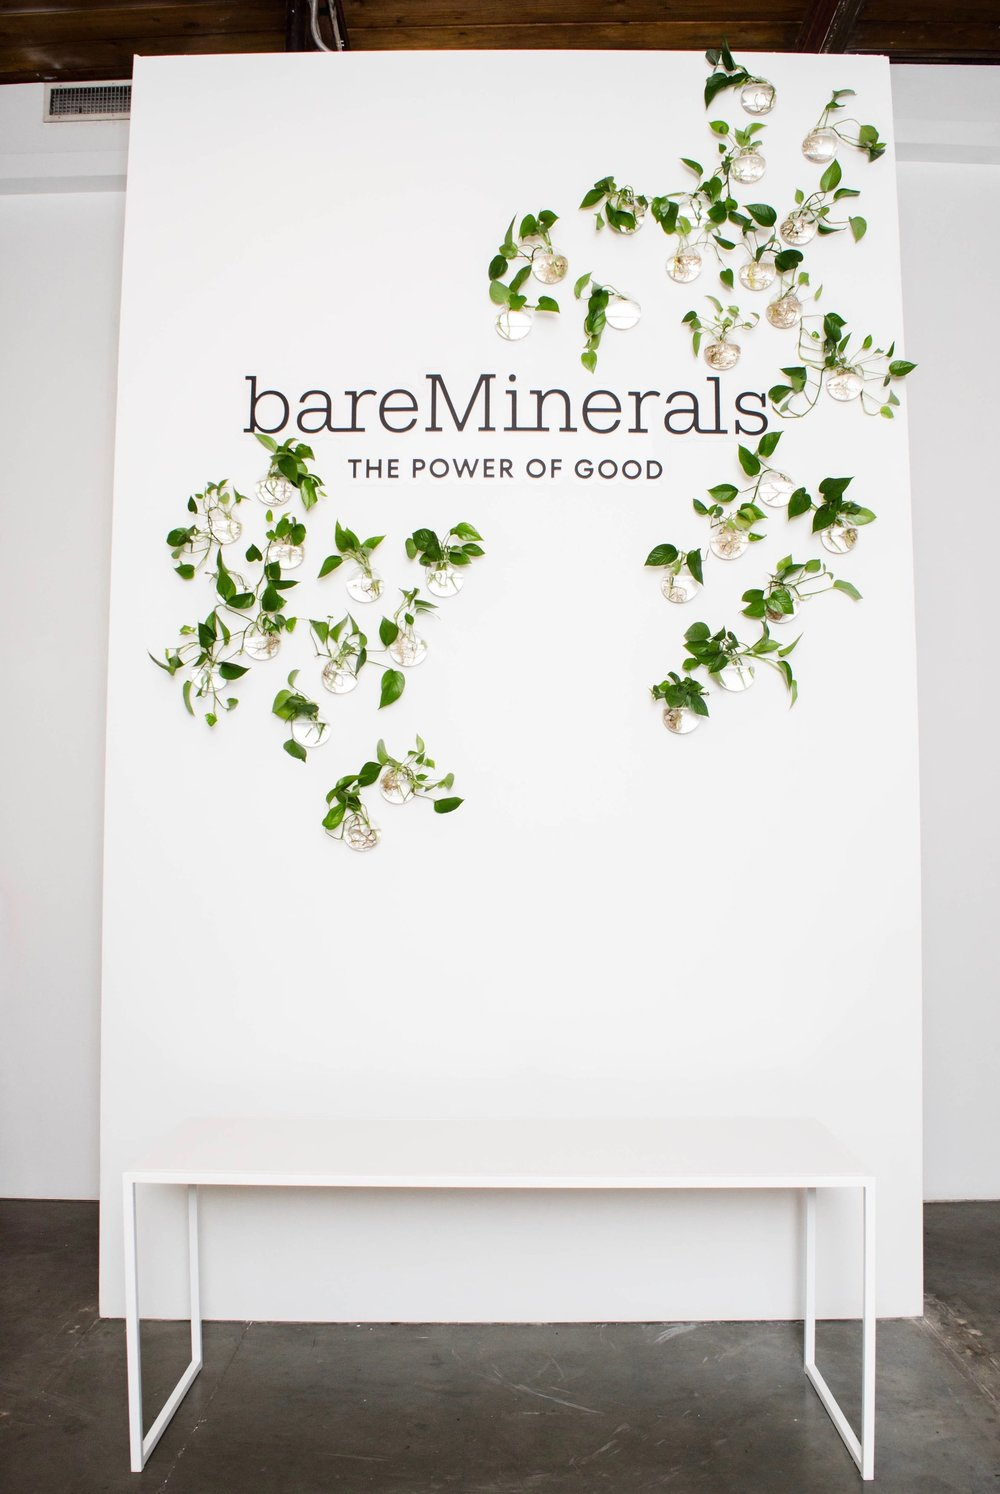 bareMinerals Plant Photo Wall - B Floral